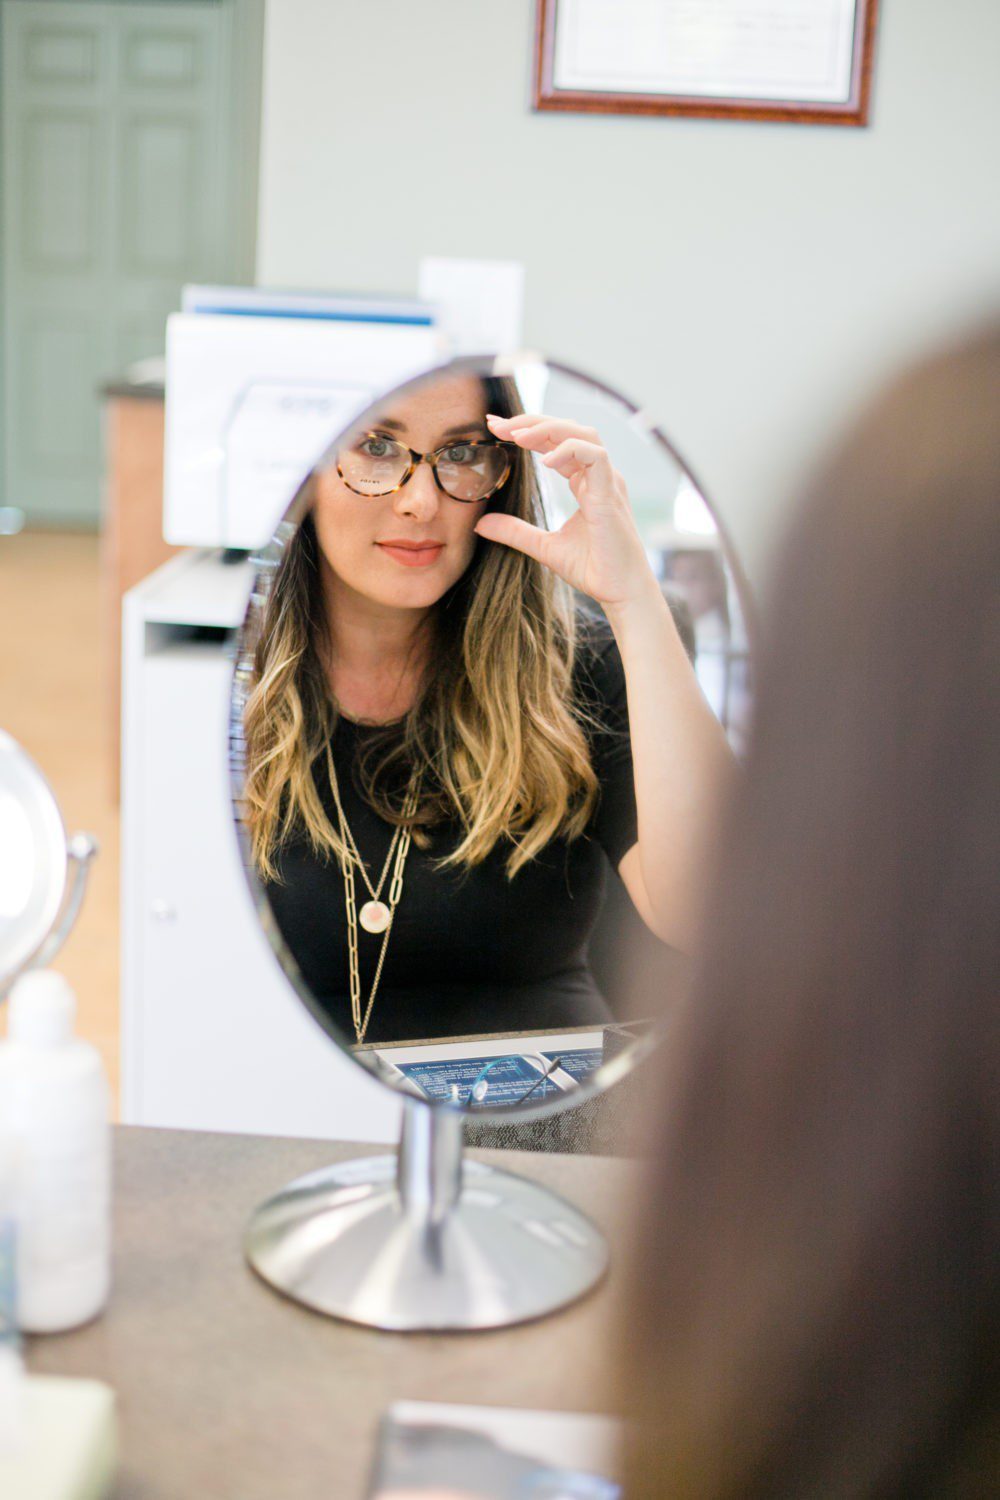 Back to School Eye Exam: How to Prepare your Child for a Successful Academic Year | Back to School Eye Exam: How to Prepare your Child for a Successful Academic Year by popular Florida lifestyle blog, Fresh Mommy Blog: image of a woman looking at herself in a mirror and trying on a pair of glasses.